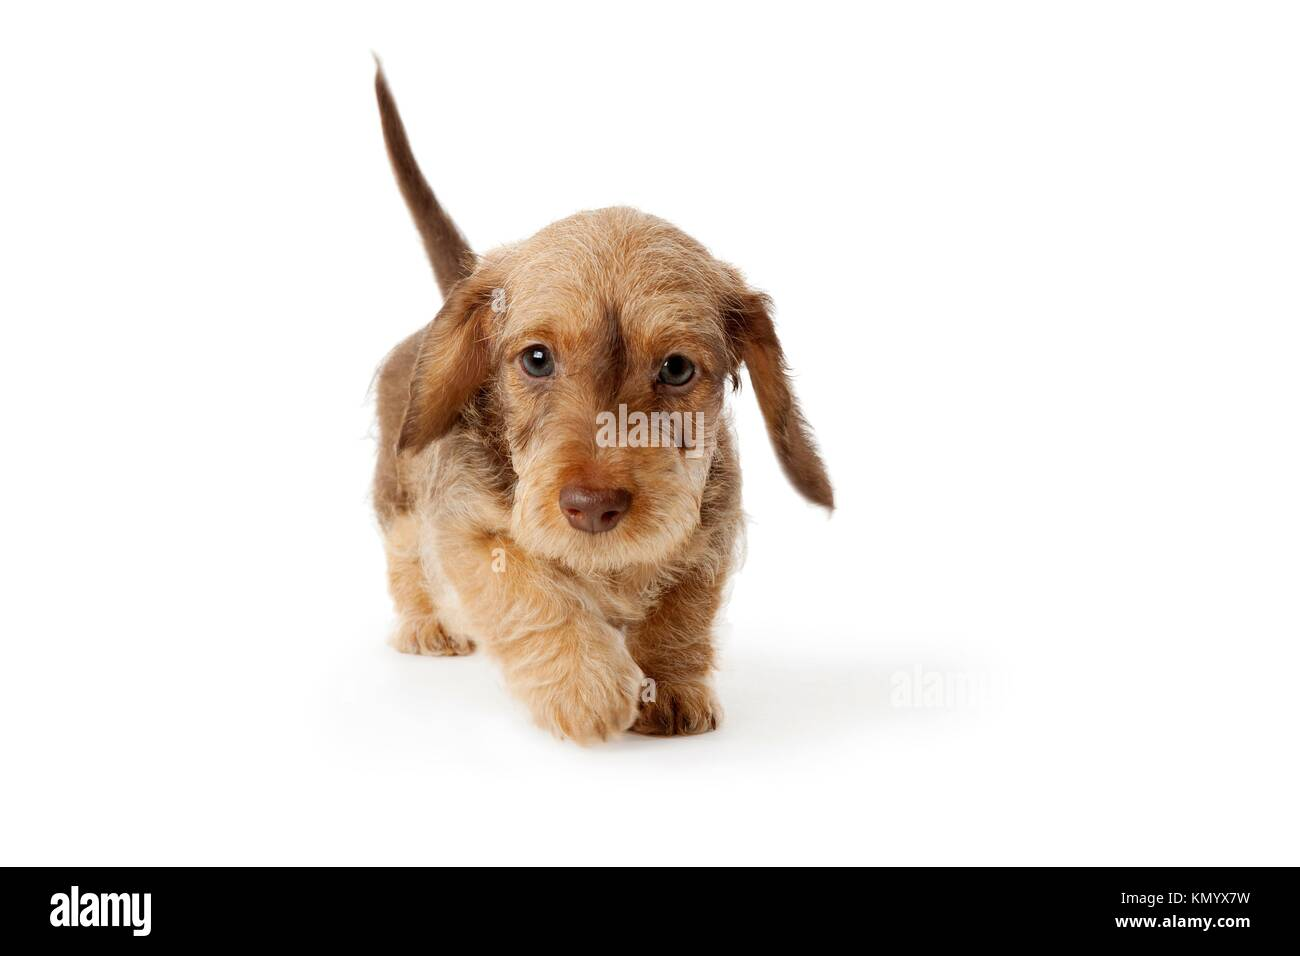 Wire Haired Dachshund Dog Walking Stock Photos & Wire Haired ...